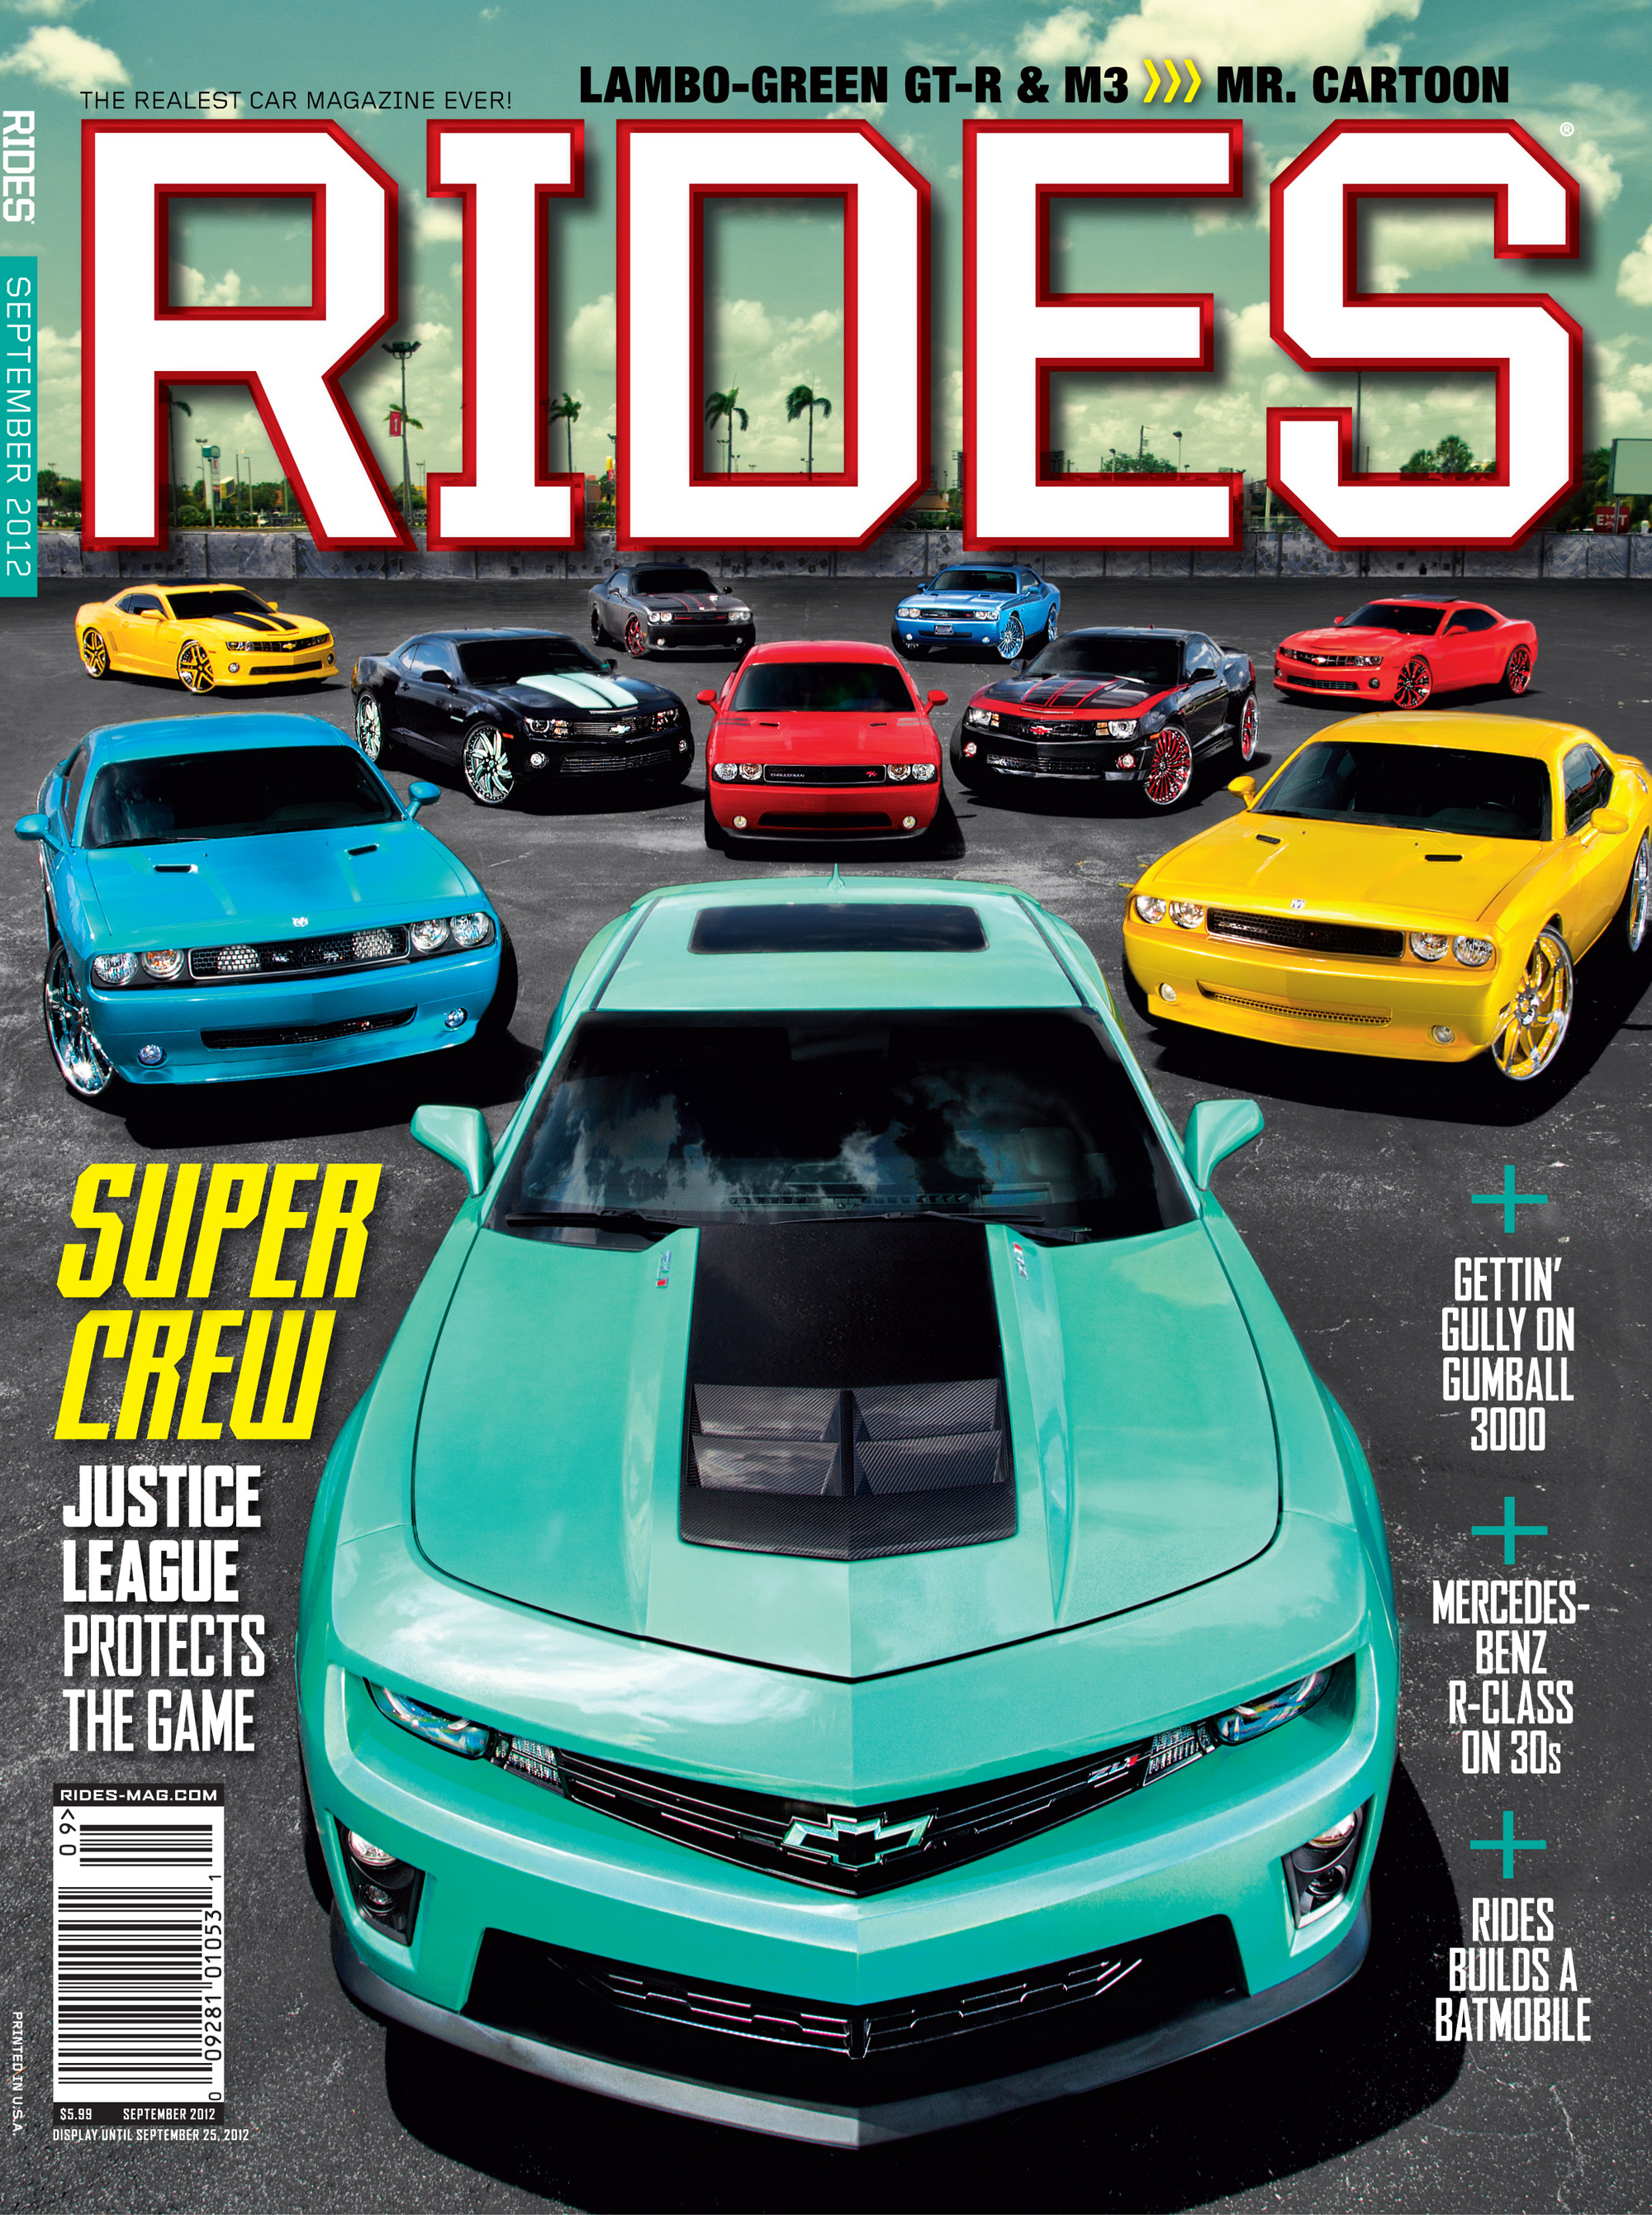 rides cars september 2012 cover justice league camaro miami batmobile issue 57